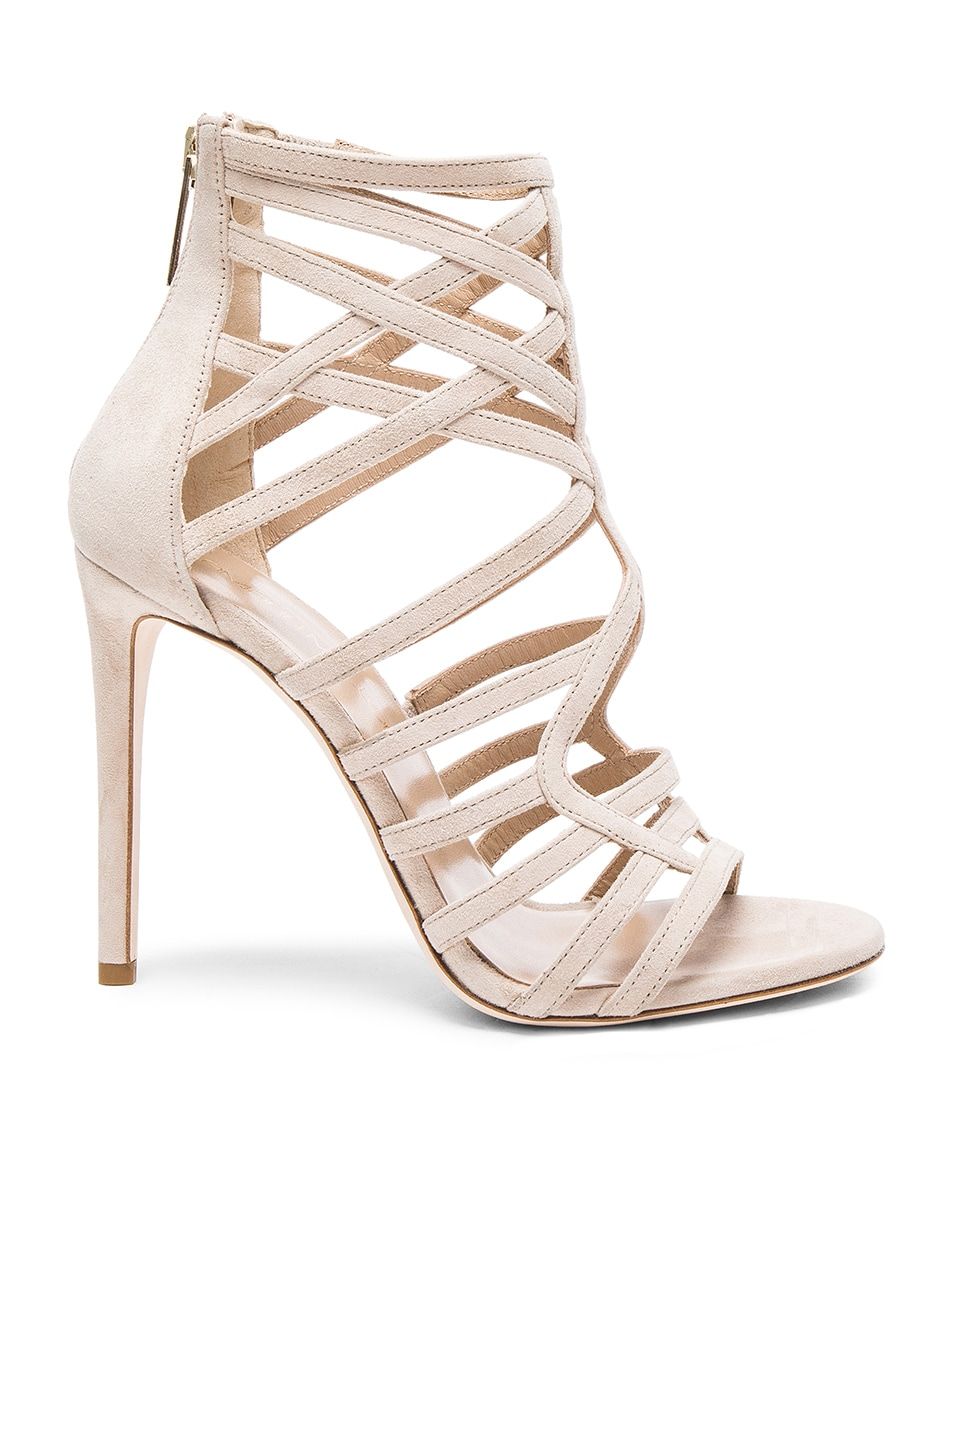 Image 1 of Tamara Mellon Goddess Nappa & Suede Sandals in Nude